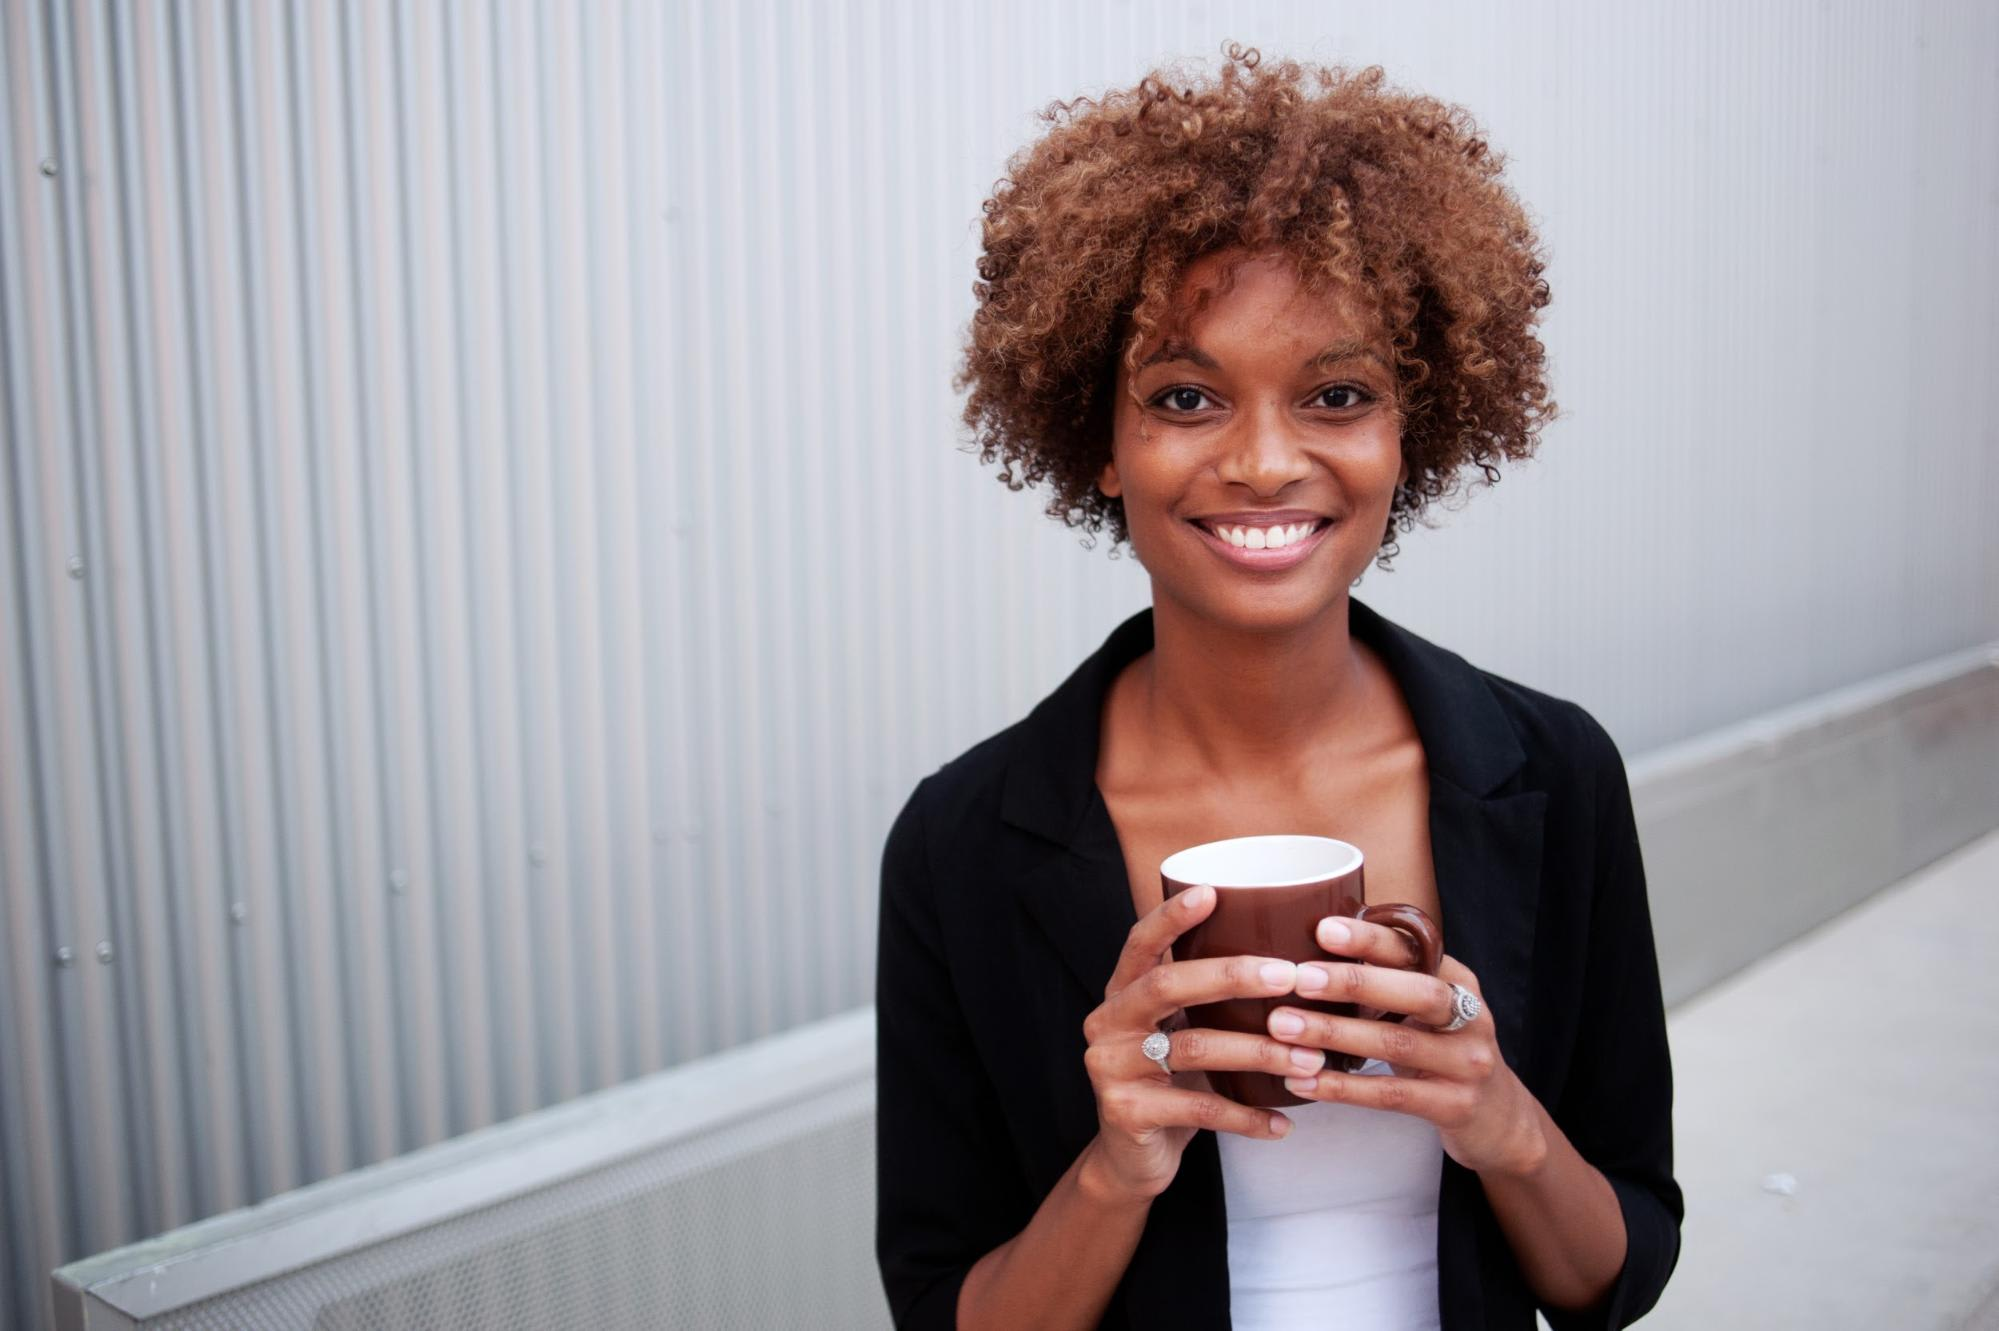 Person smiling, holding a coffee cup